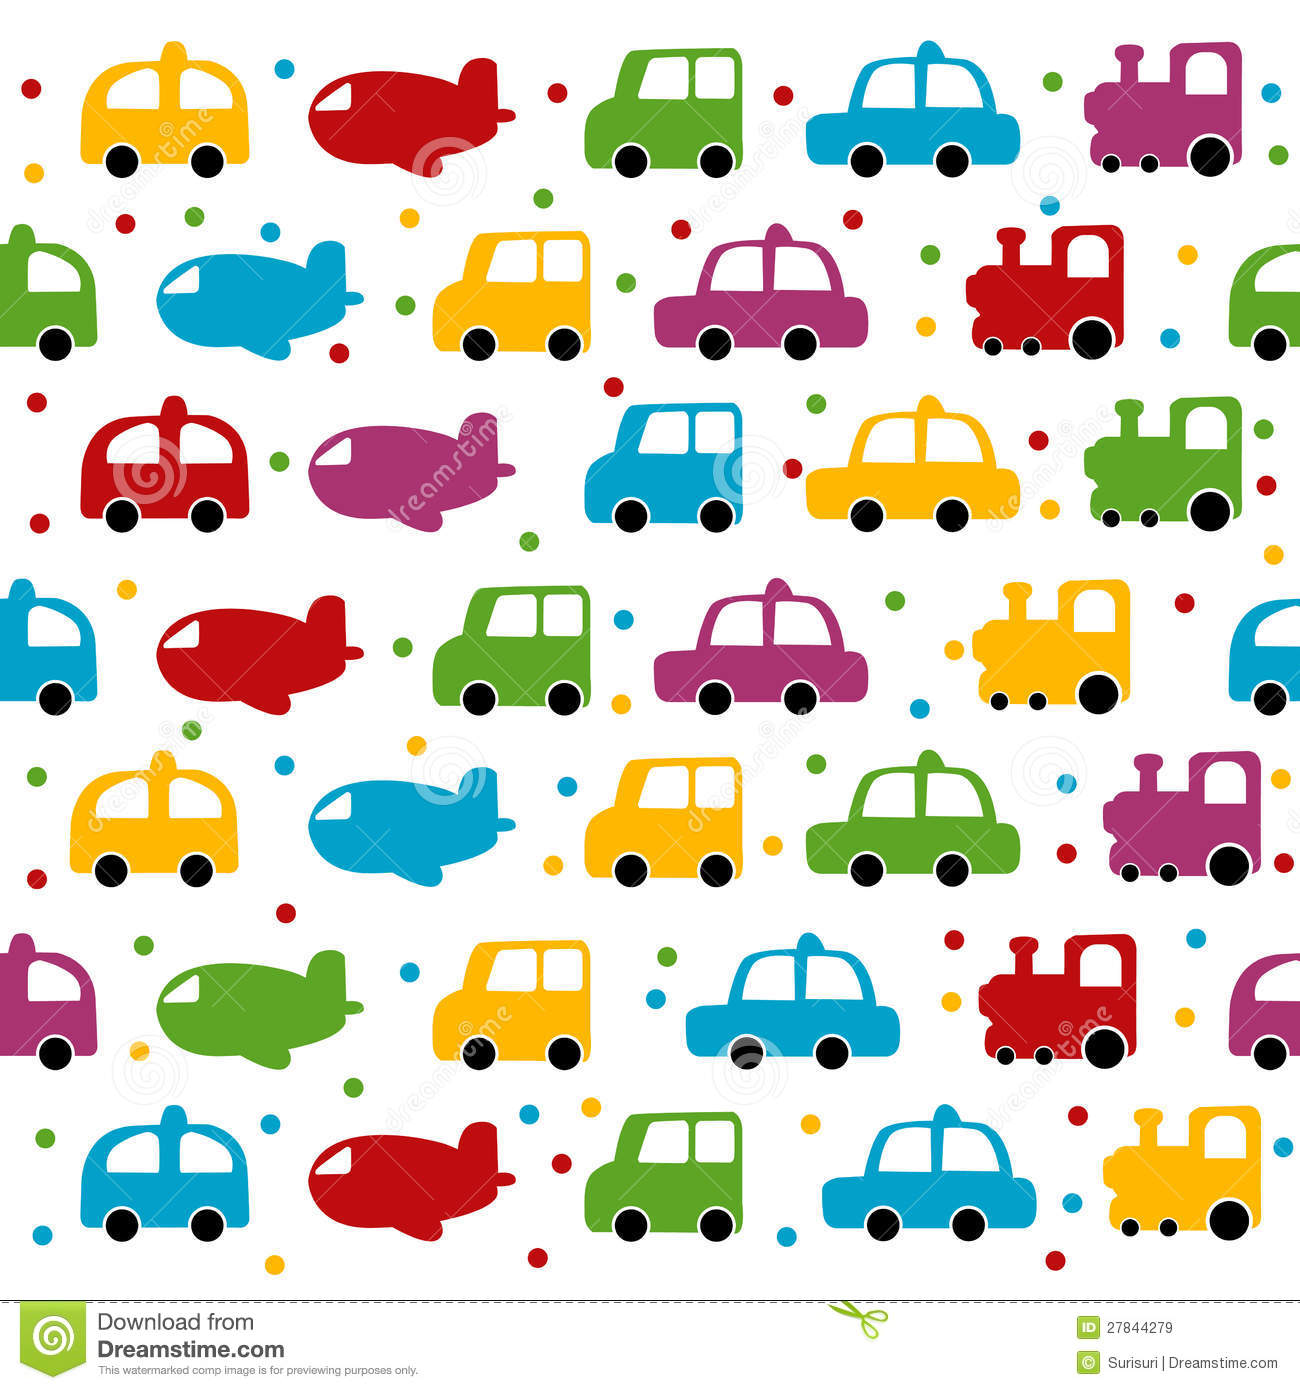 Royalty Free Stock Images Seamless Toy Car Plane Background Image27844279 on blue toy truck